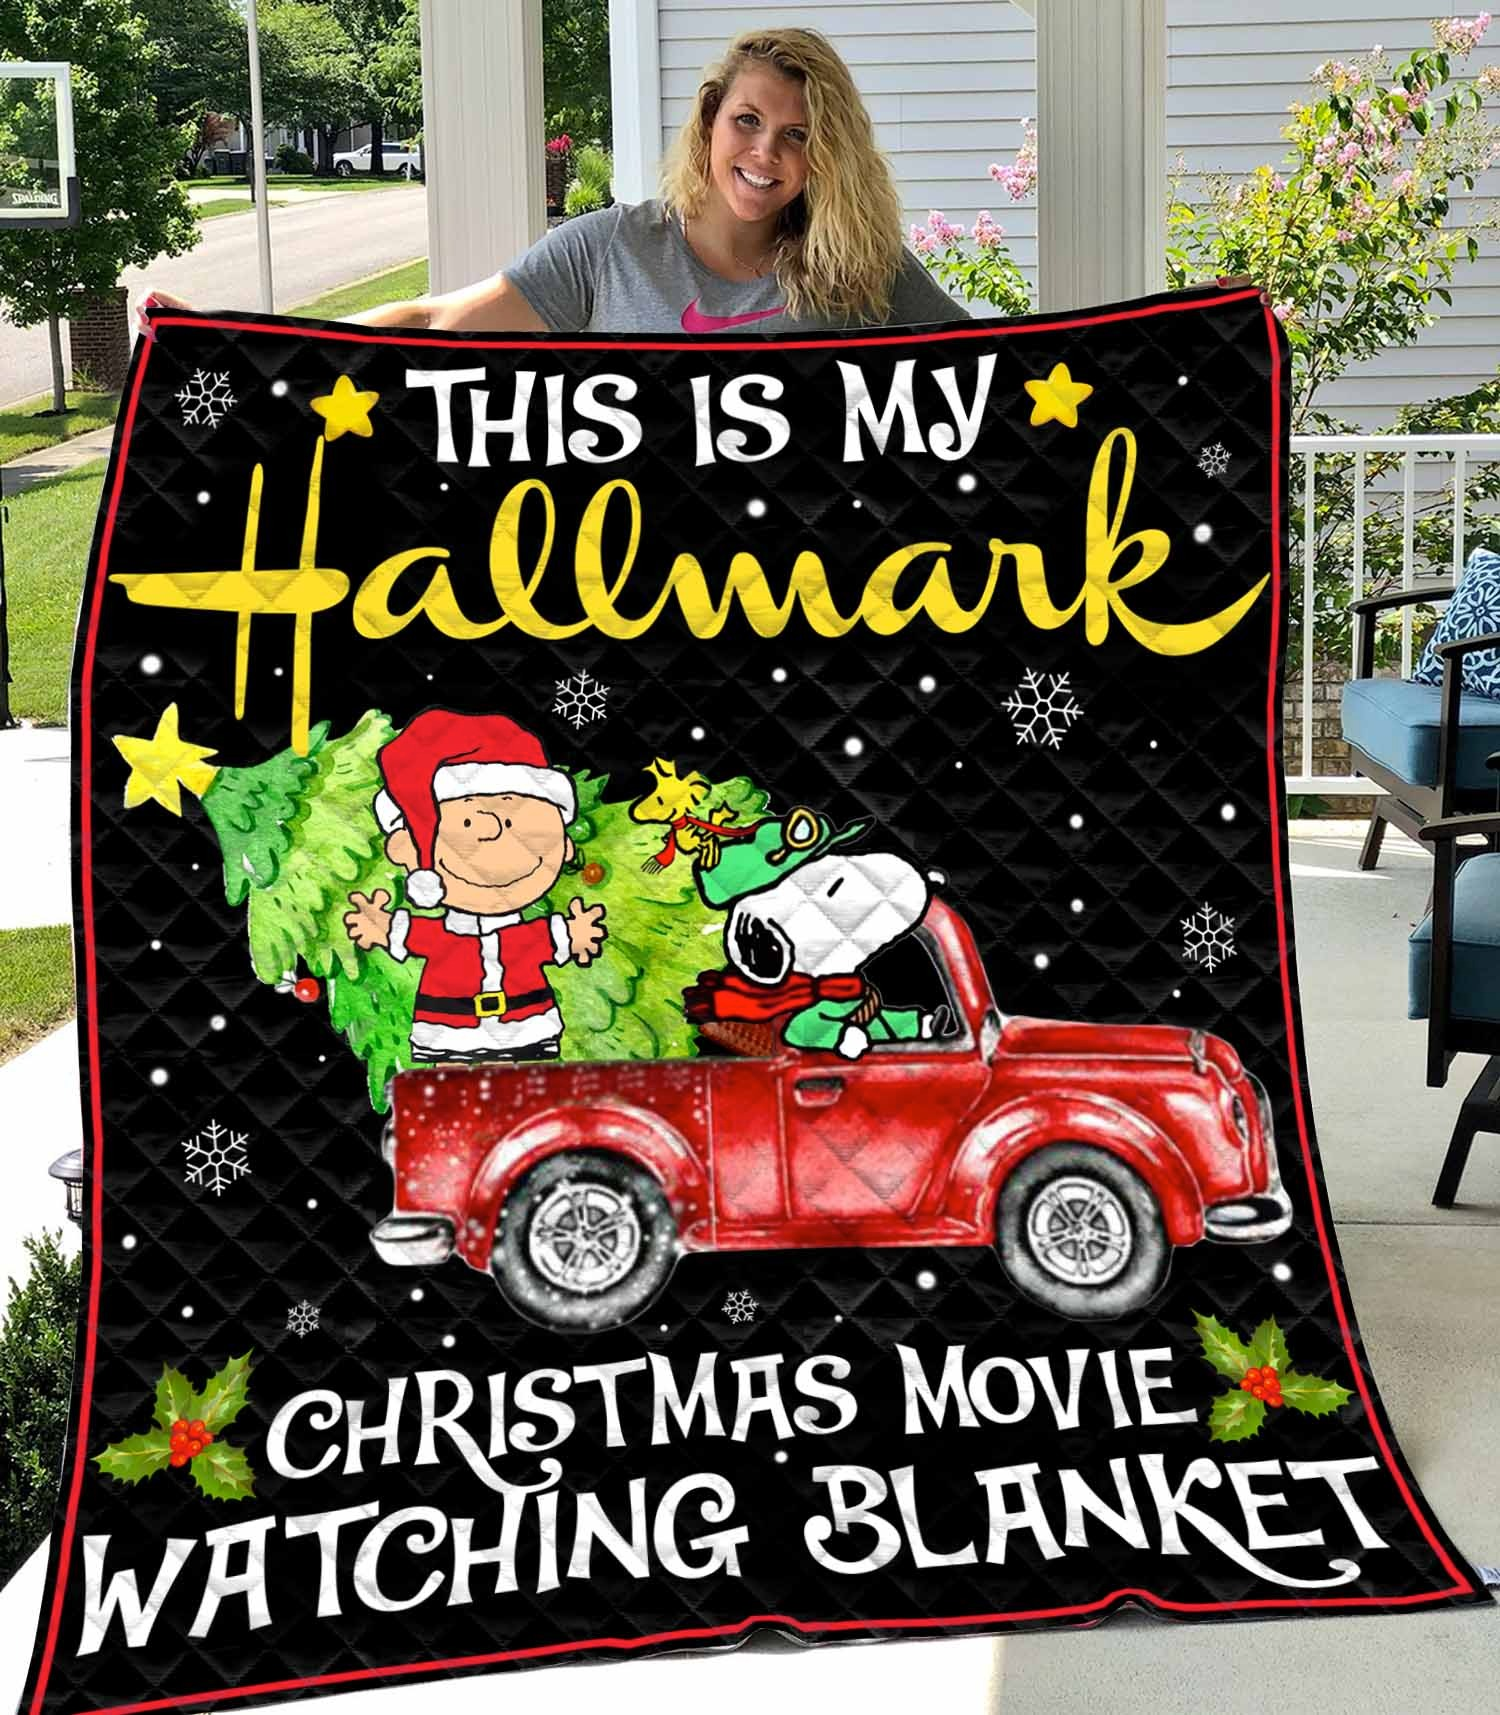 This is my Hallmark Christmas movie watching blanket Snoopy and Charlie Brown Quilts